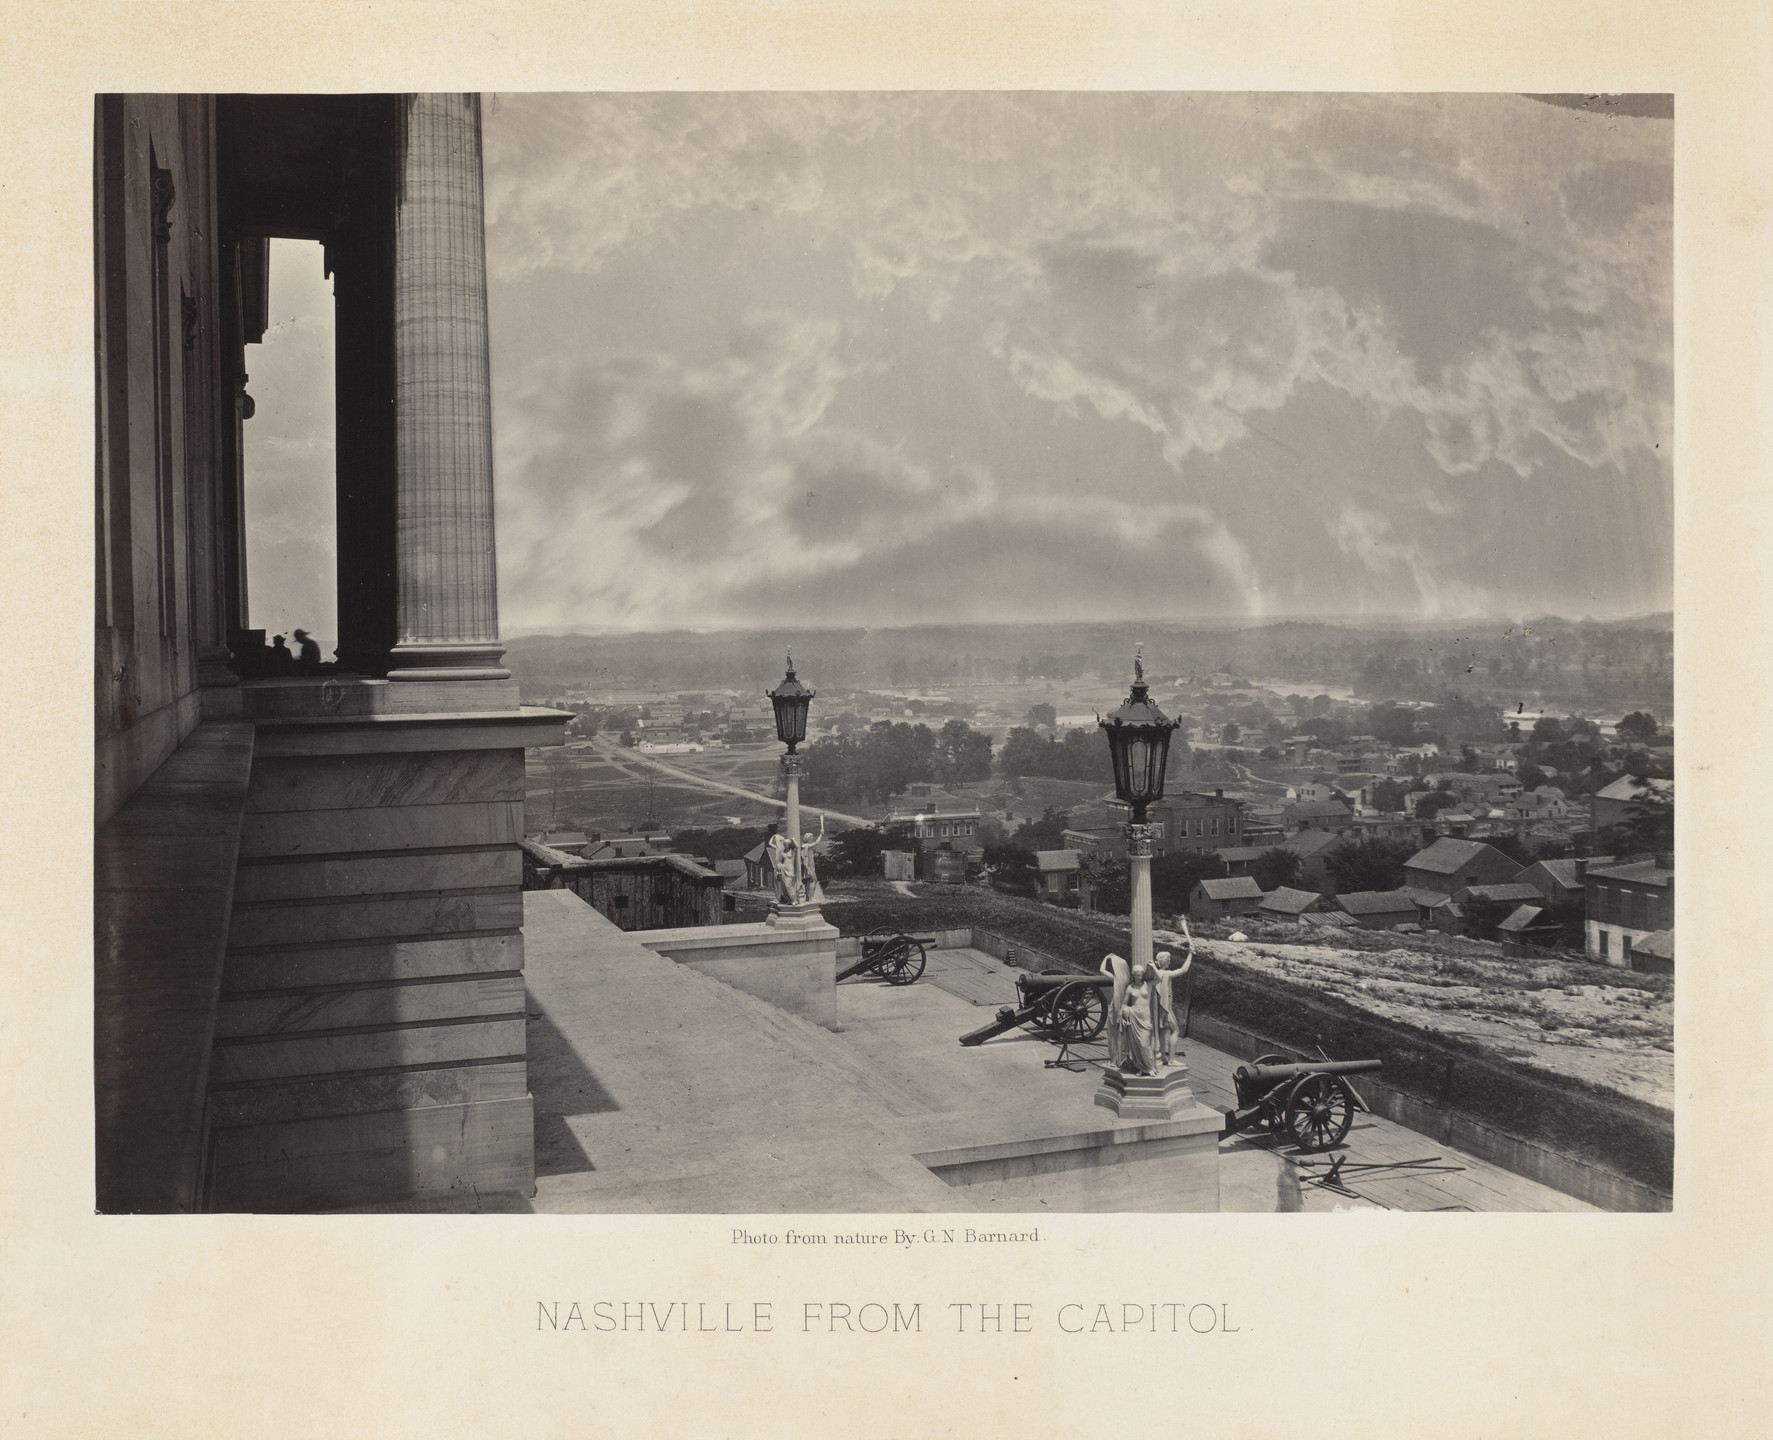 George Barnard. Nashville, from the Capitol from the album Photographic Views of Sherman's Campaign. 1864-65